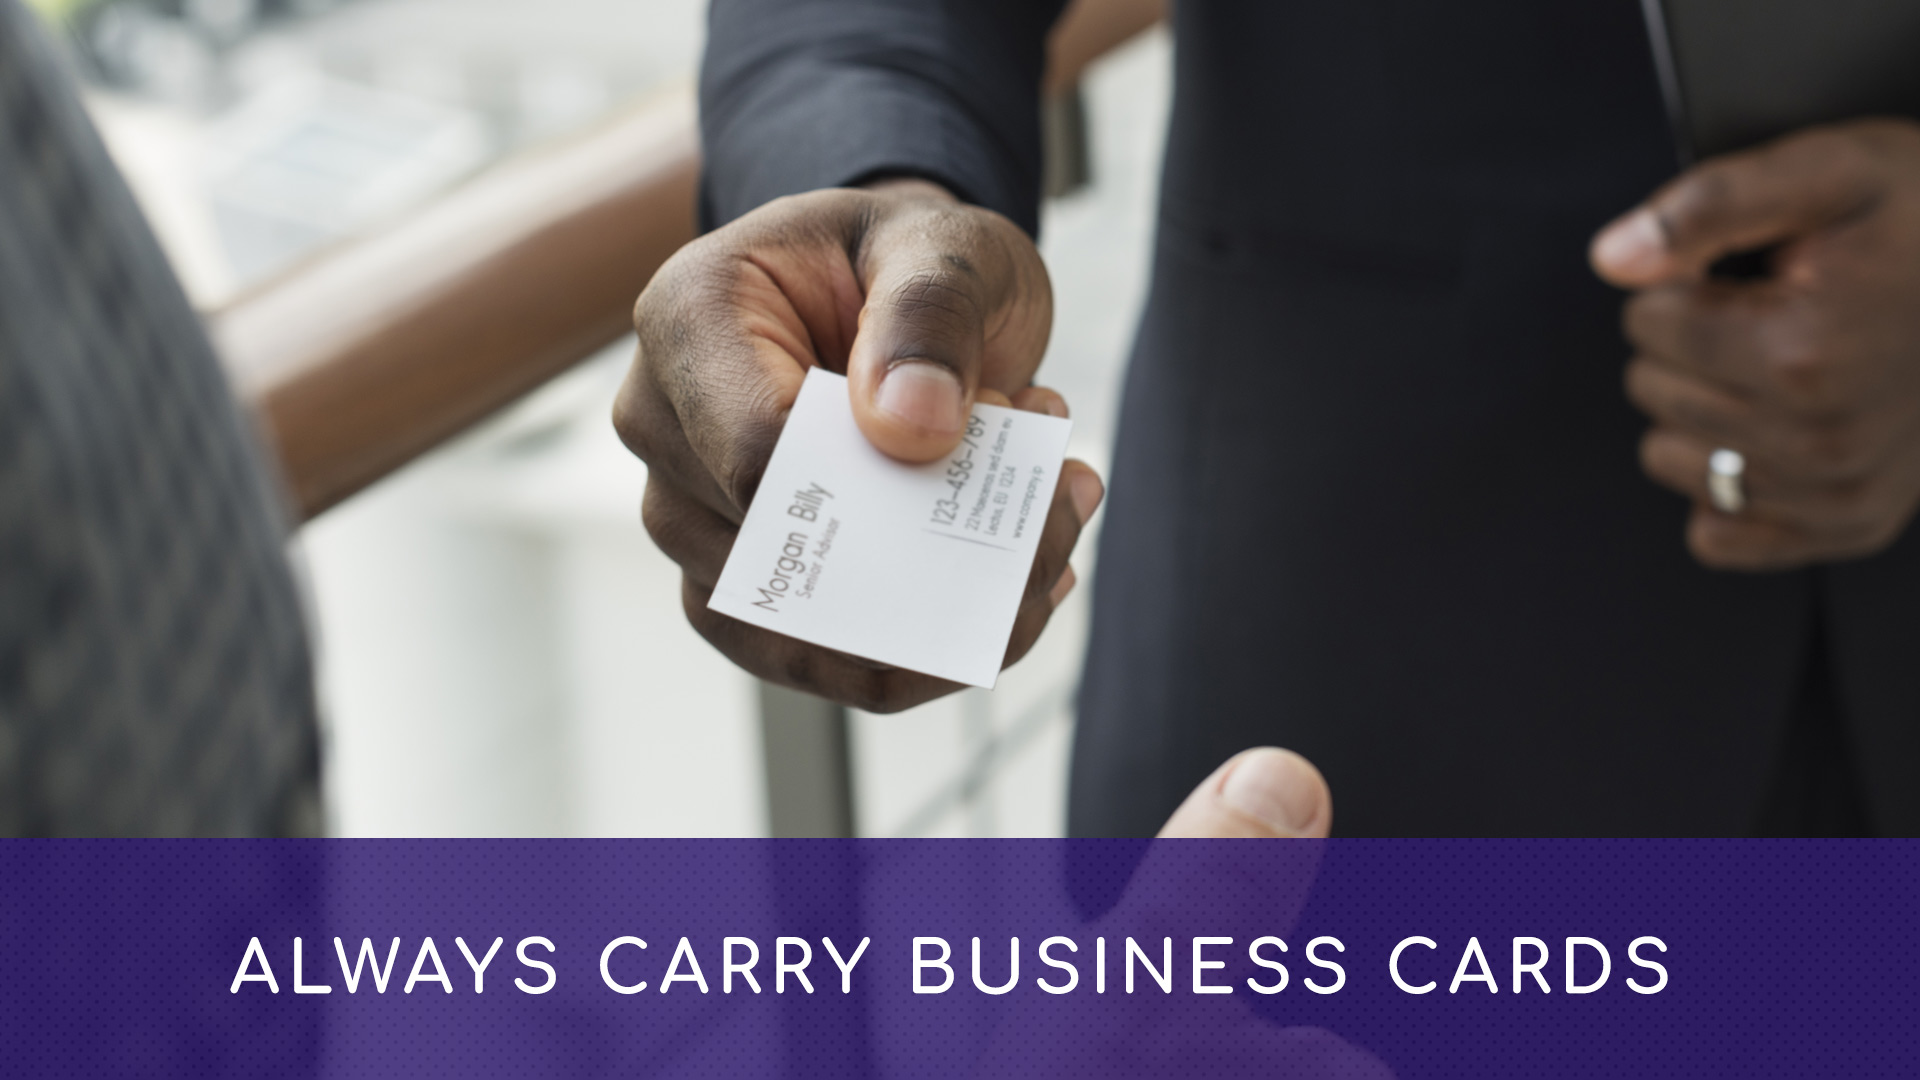 ALWAYS Carry Business Cards